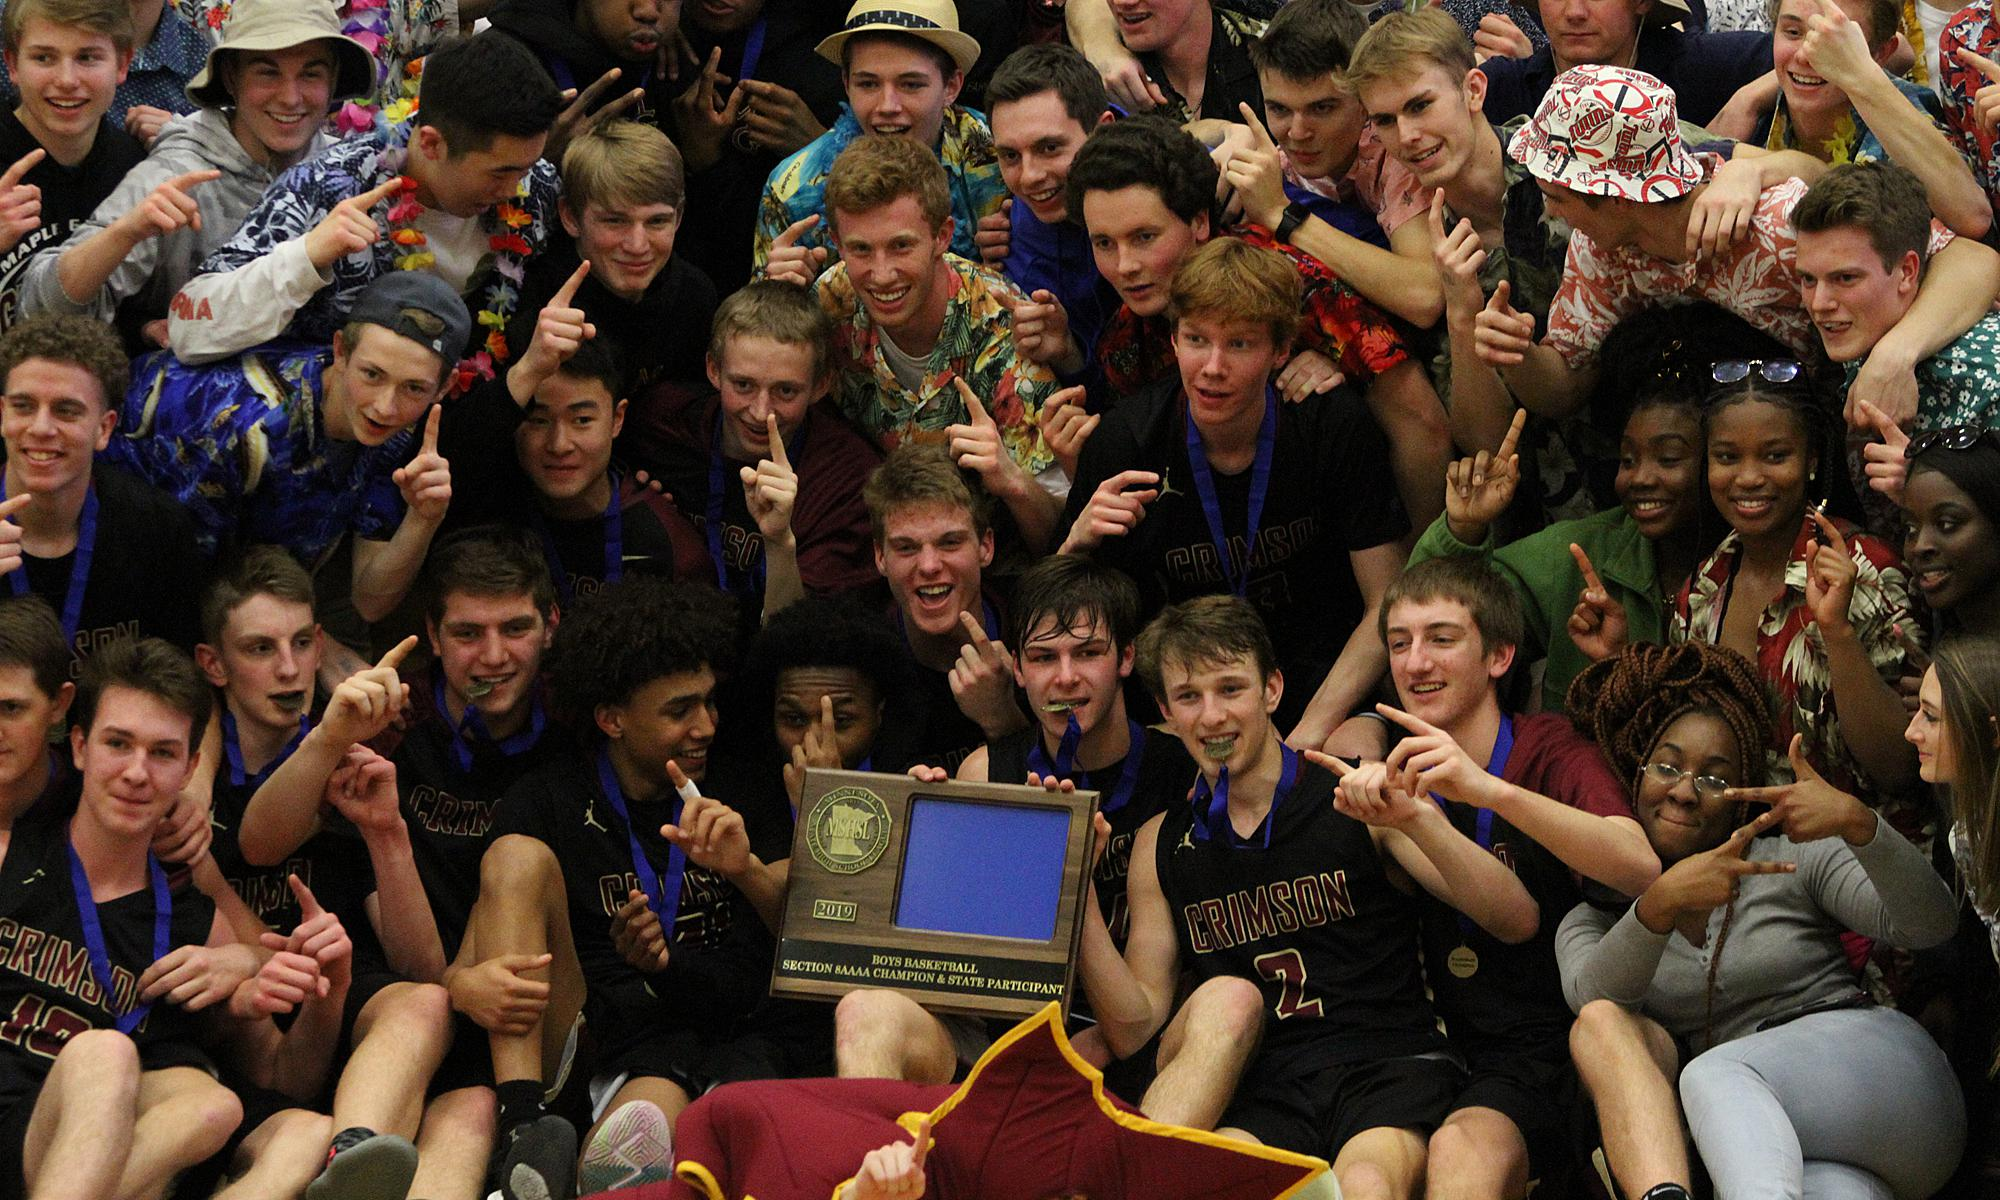 Maple Grove poses with its student section after clinching the Class 4A, Section 8 title Thursday night in St. Michael. The Crimson defeated Buffalo 77-64. Photo by Drew Herron, SportsEngine